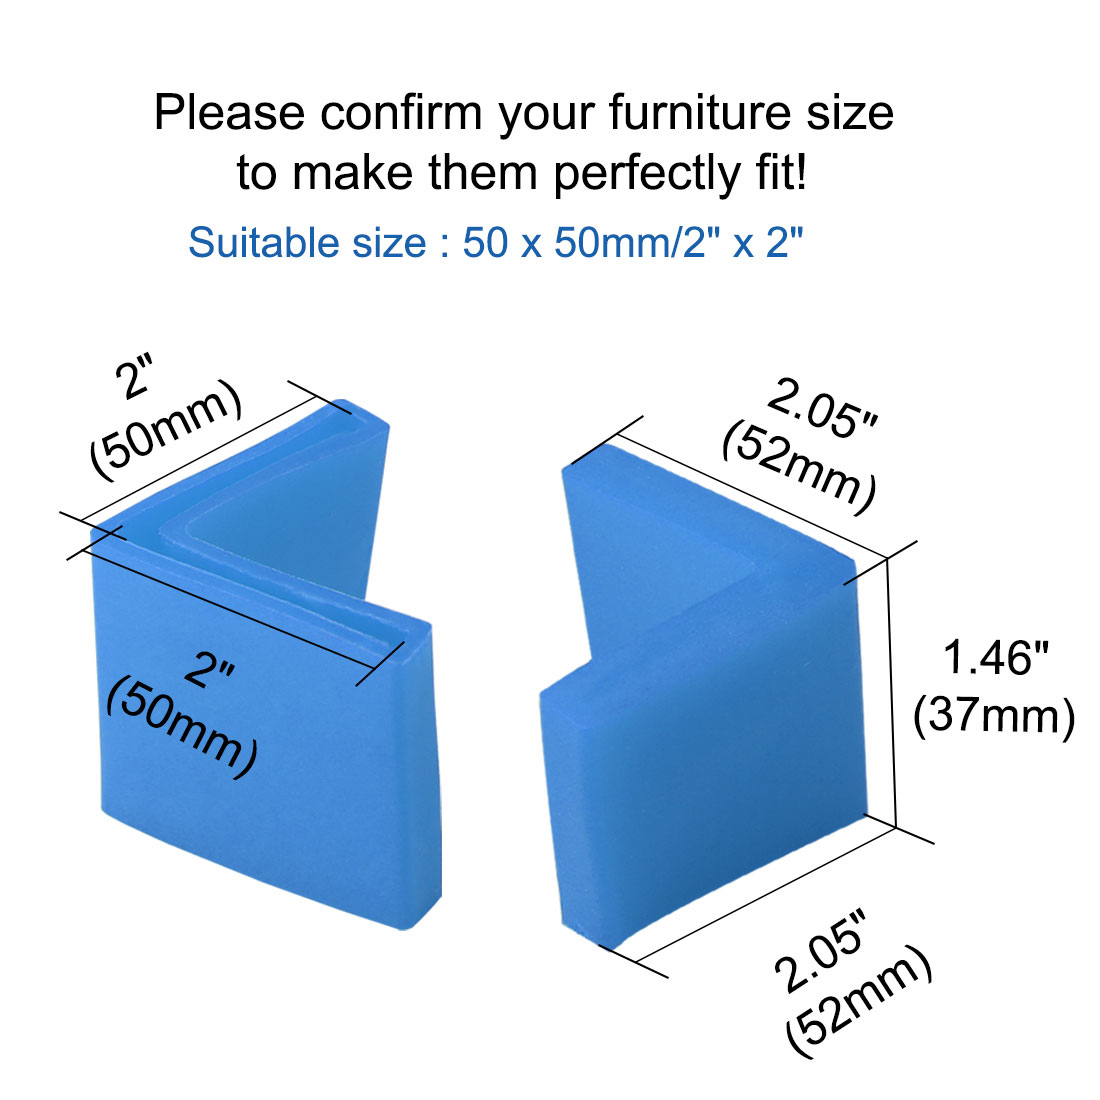 50mm x 50mm Angle Iron Foot Pad L Shaped PVC Leg Cap Floor Protector Blue 24pcs - image 3 of 7